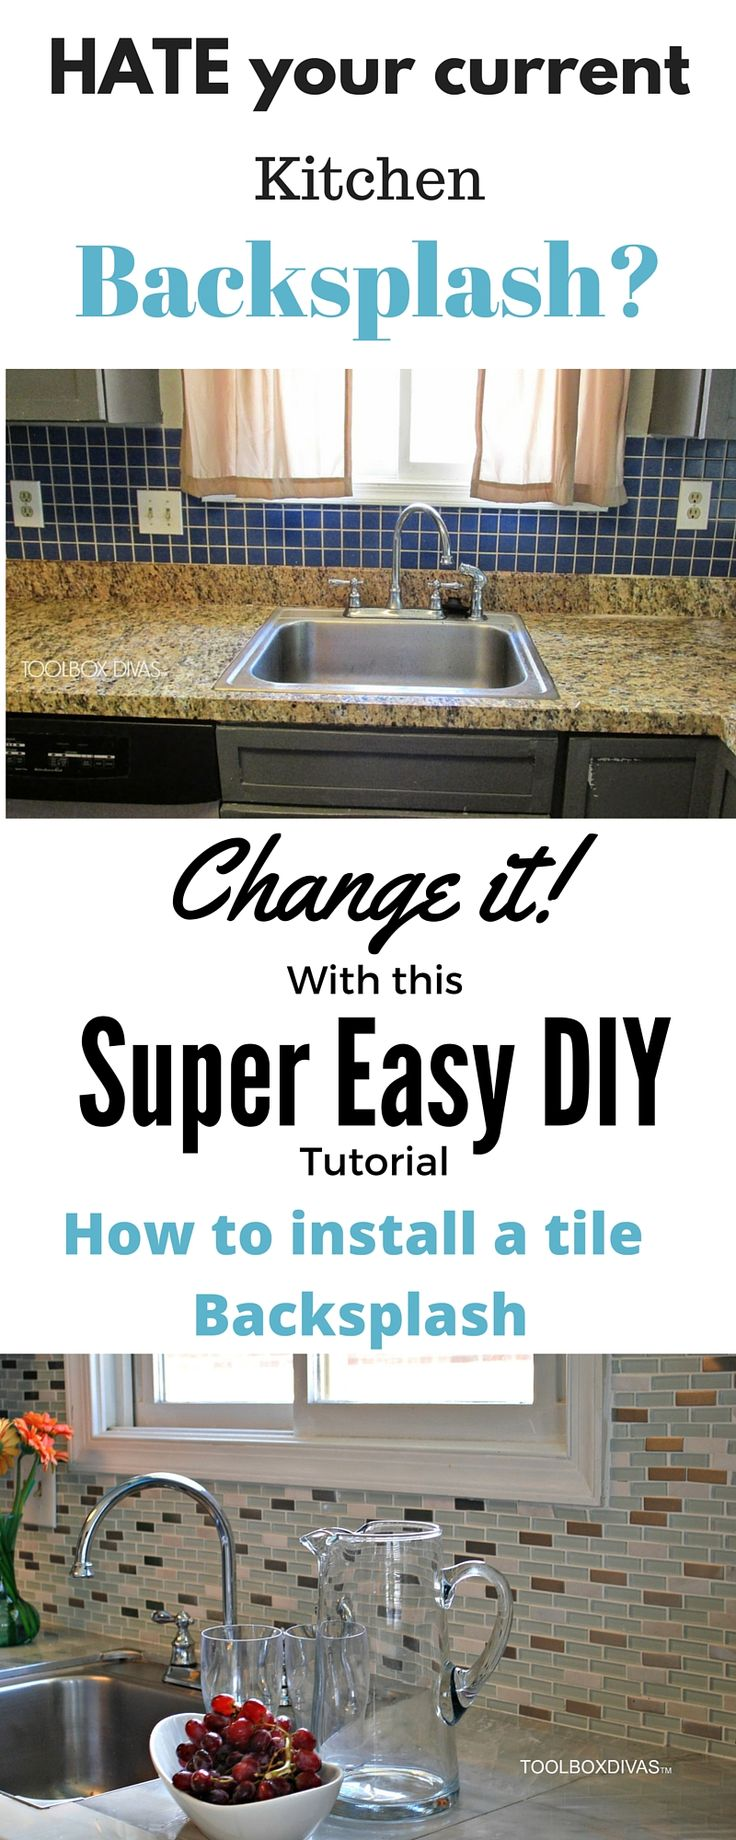 How to install a tile backsplash. Remove the old out dated backsplash and replace with something modern that fits the decor and feel of your home.  Low cost kitchen update solution